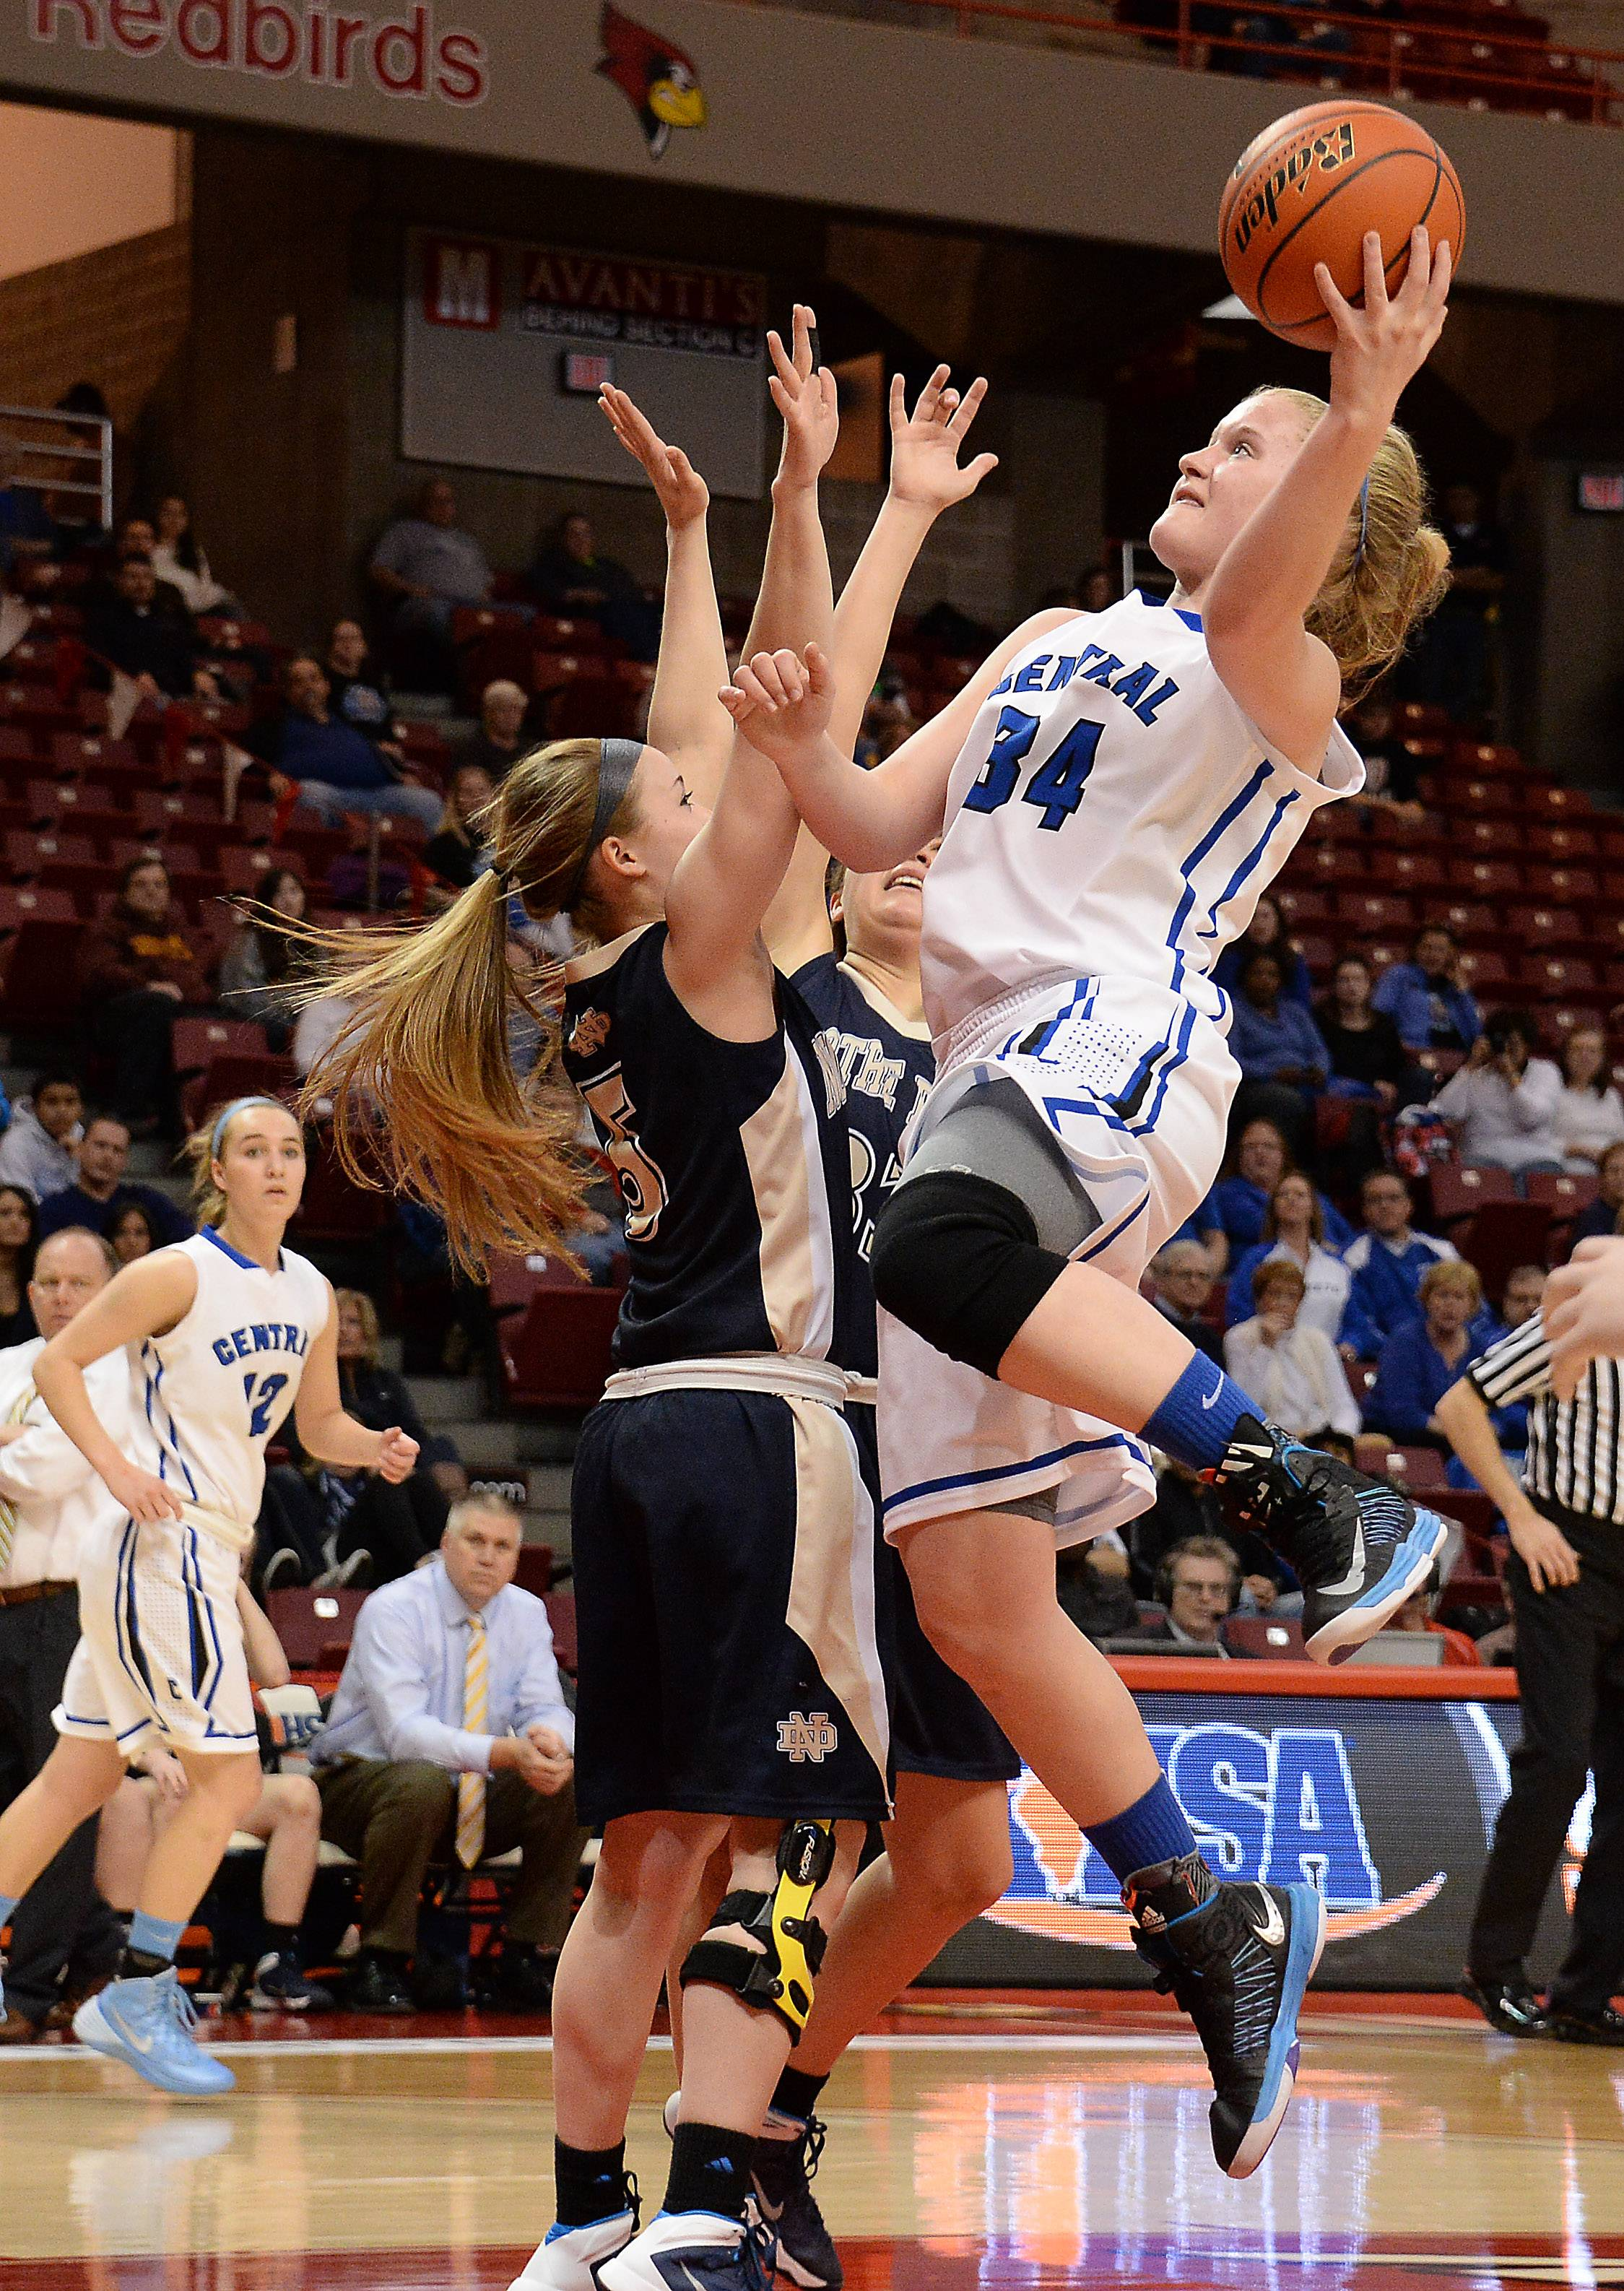 Burlington Central's Sam Pryor goes for the shot as Quincy Notre Dame's defense applies pressure in the first period of girls state basketball in the third place game in Normal on Saturday.